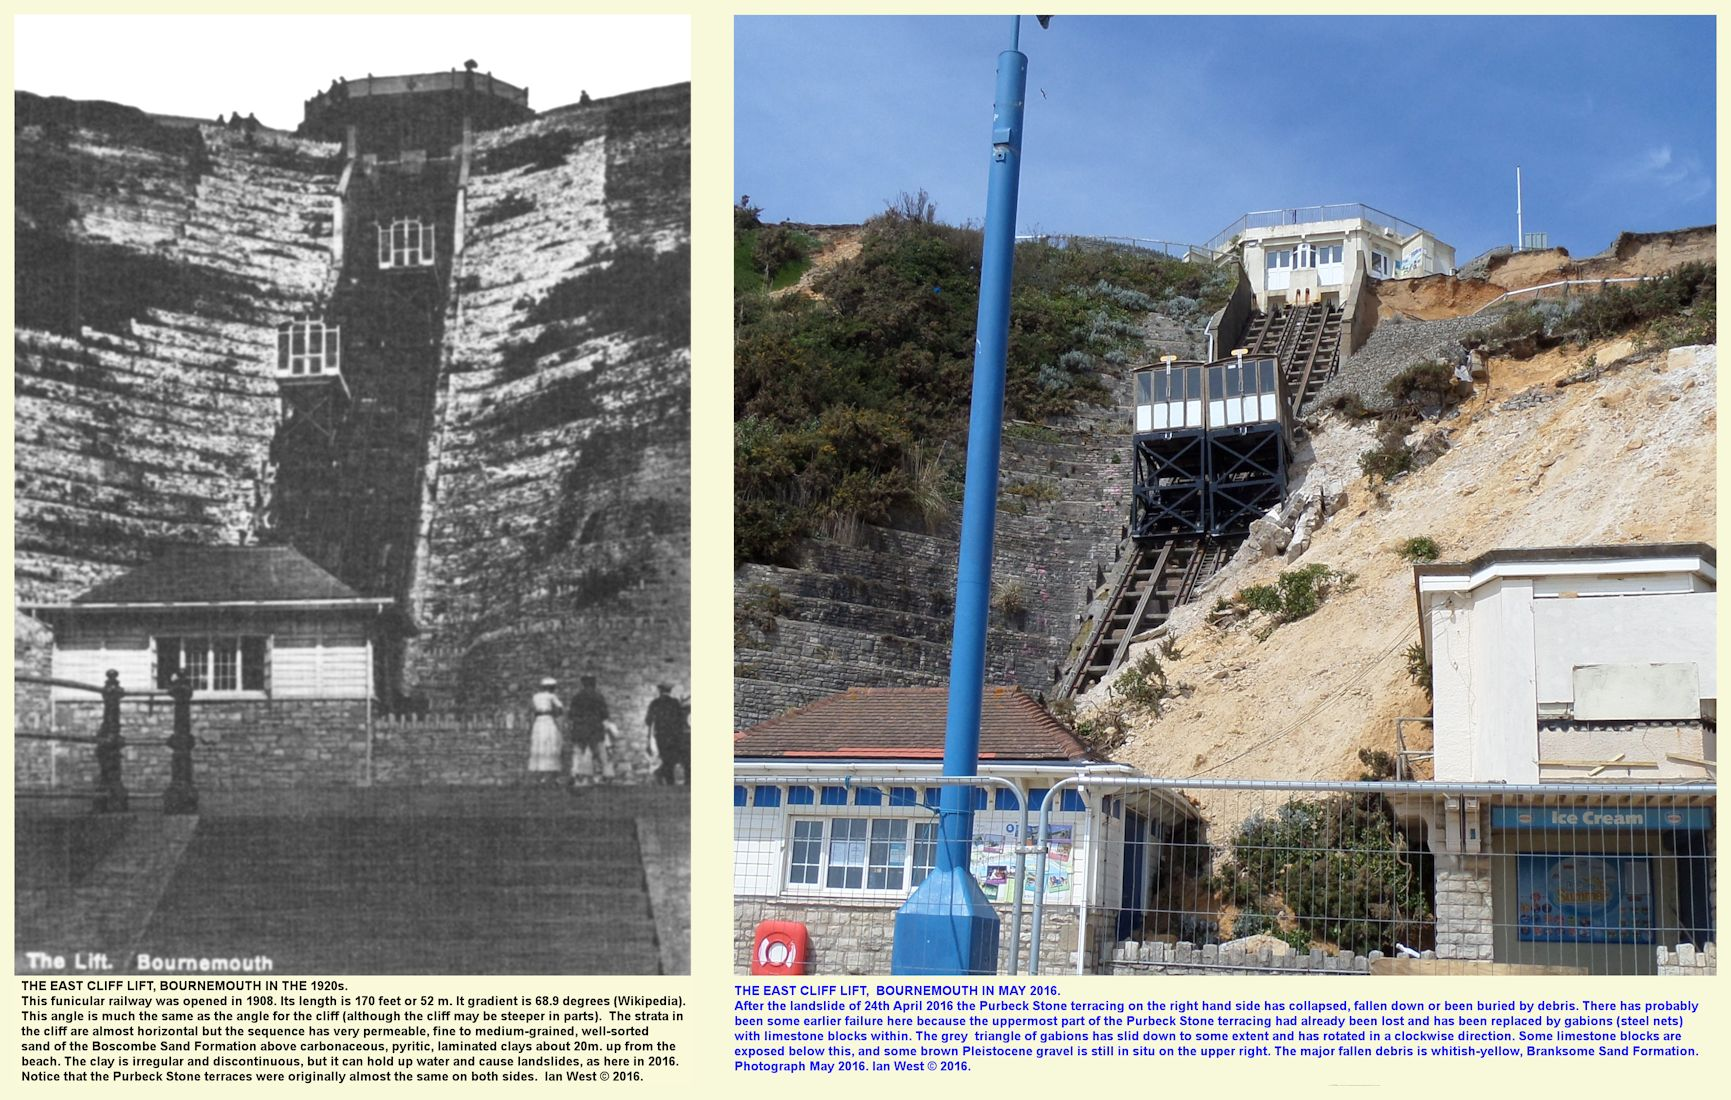 The East Cliff, Cliff Lift, Bournemouth, Dorset, in about 1920 and after the landslide of April 2016